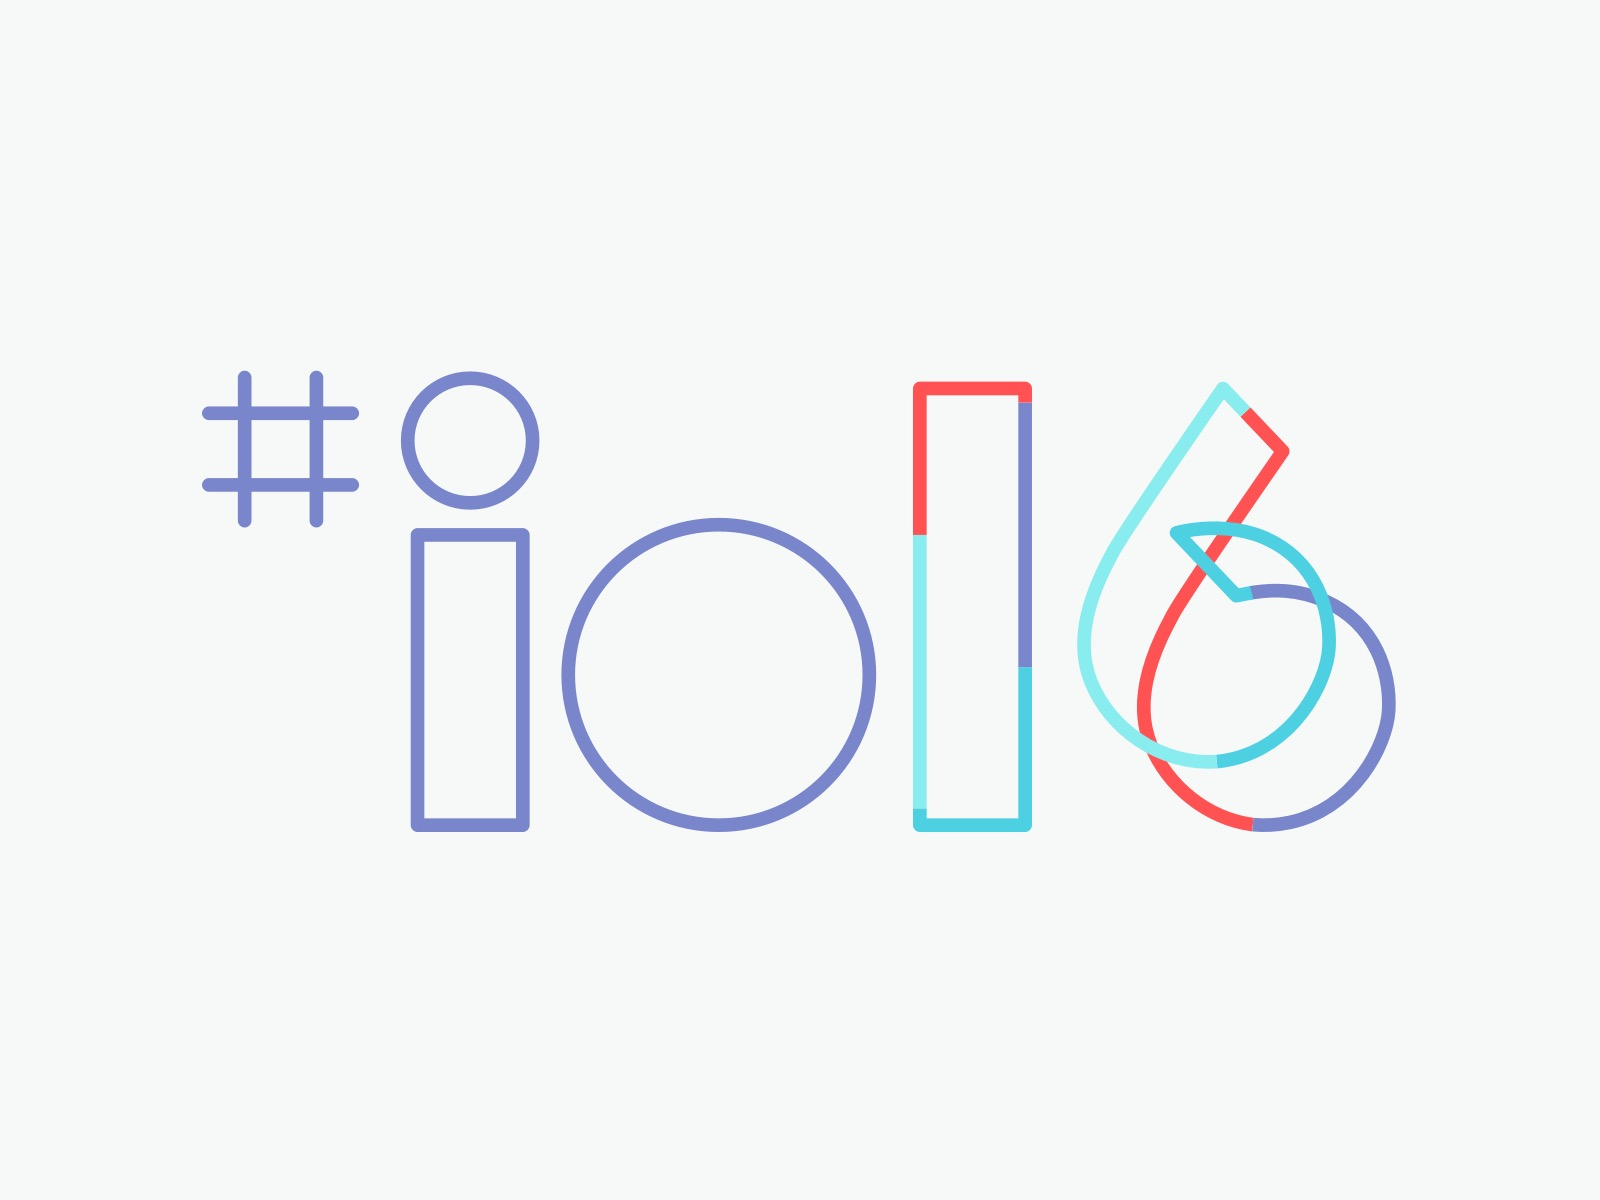 The coolest technologies announced at Google I/O